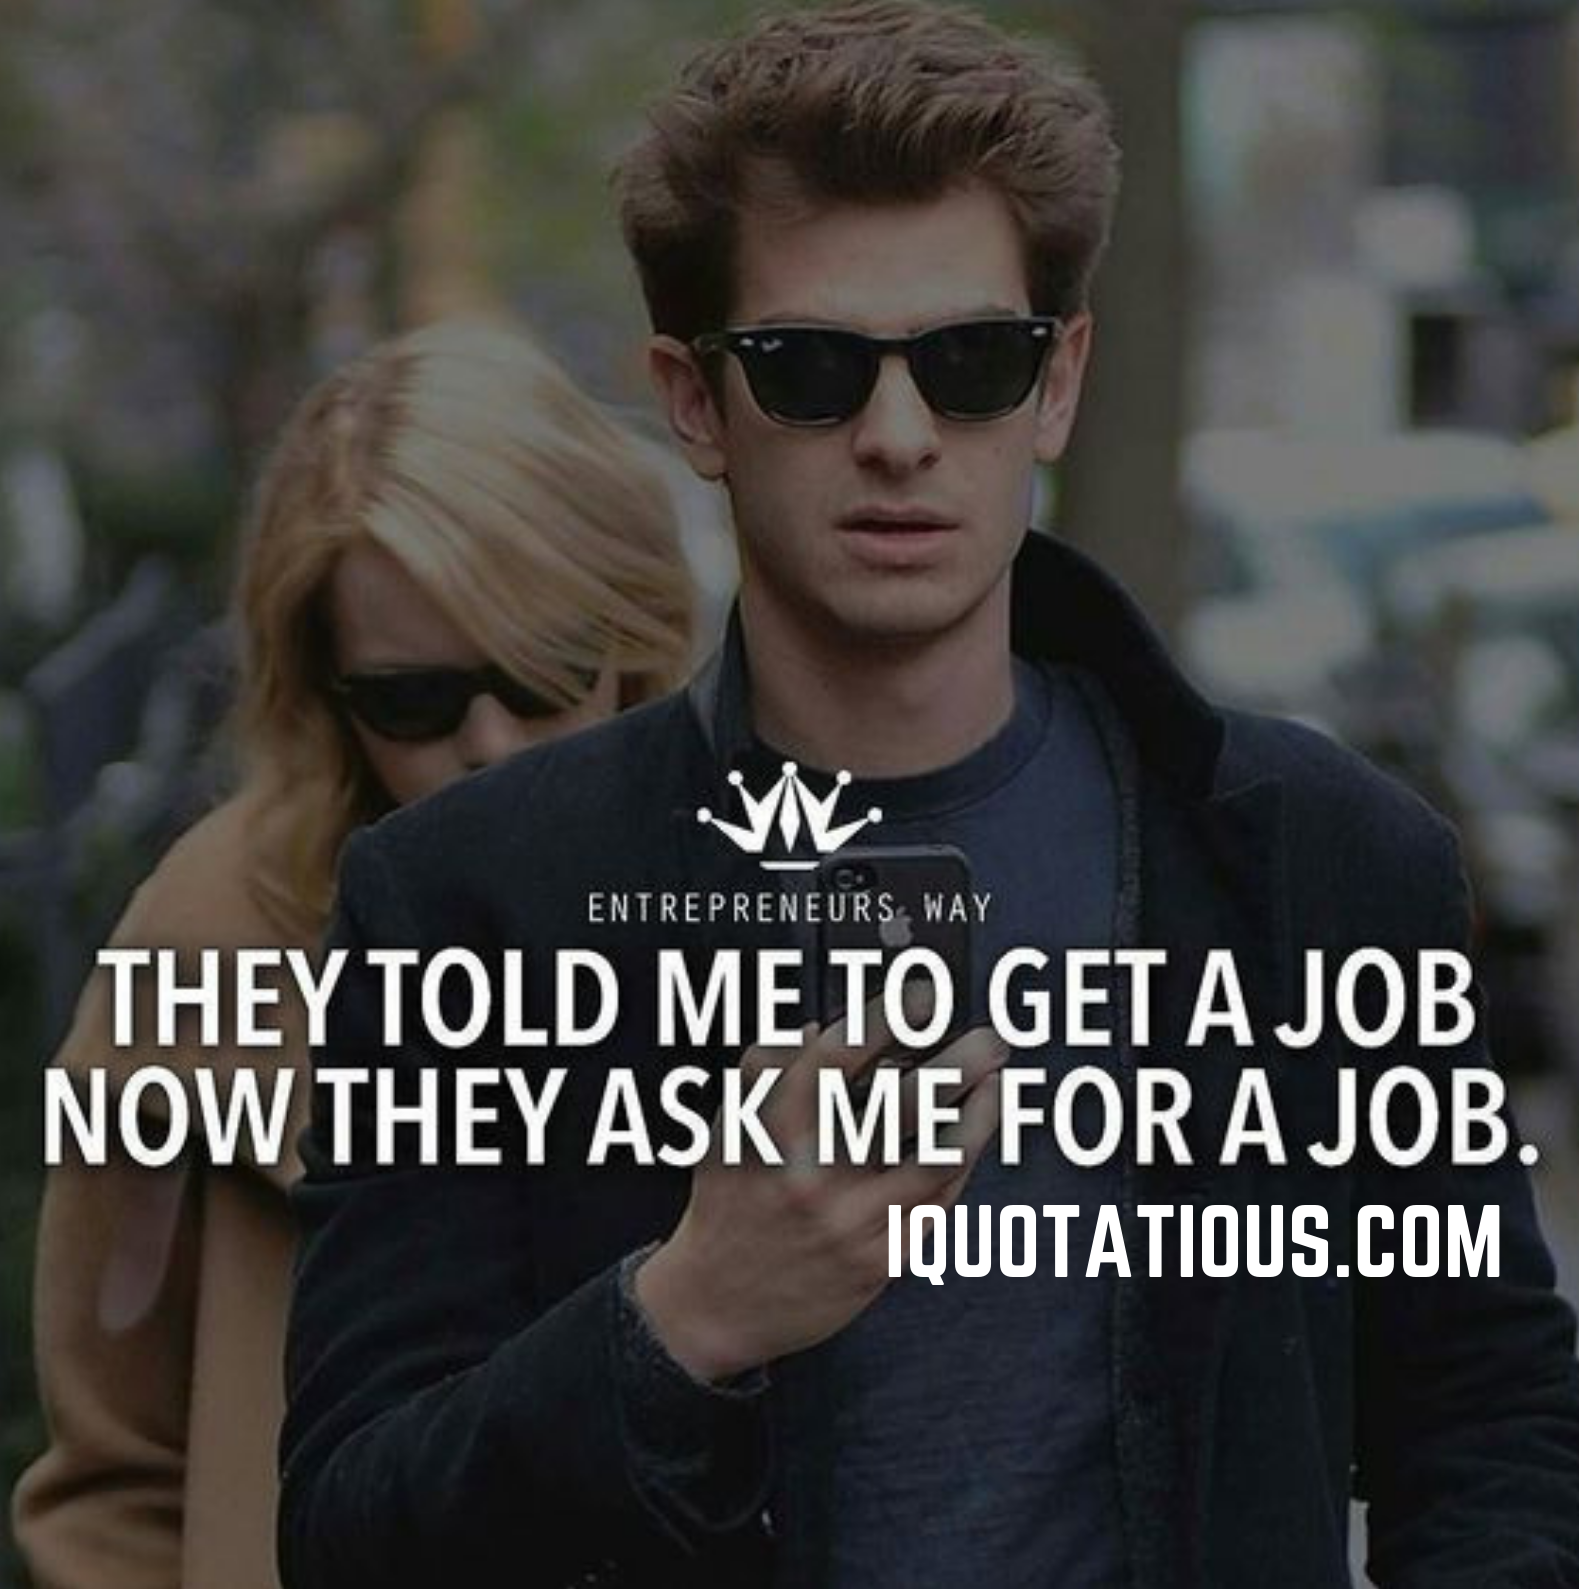 they told me to get a job. now they ask me for a job